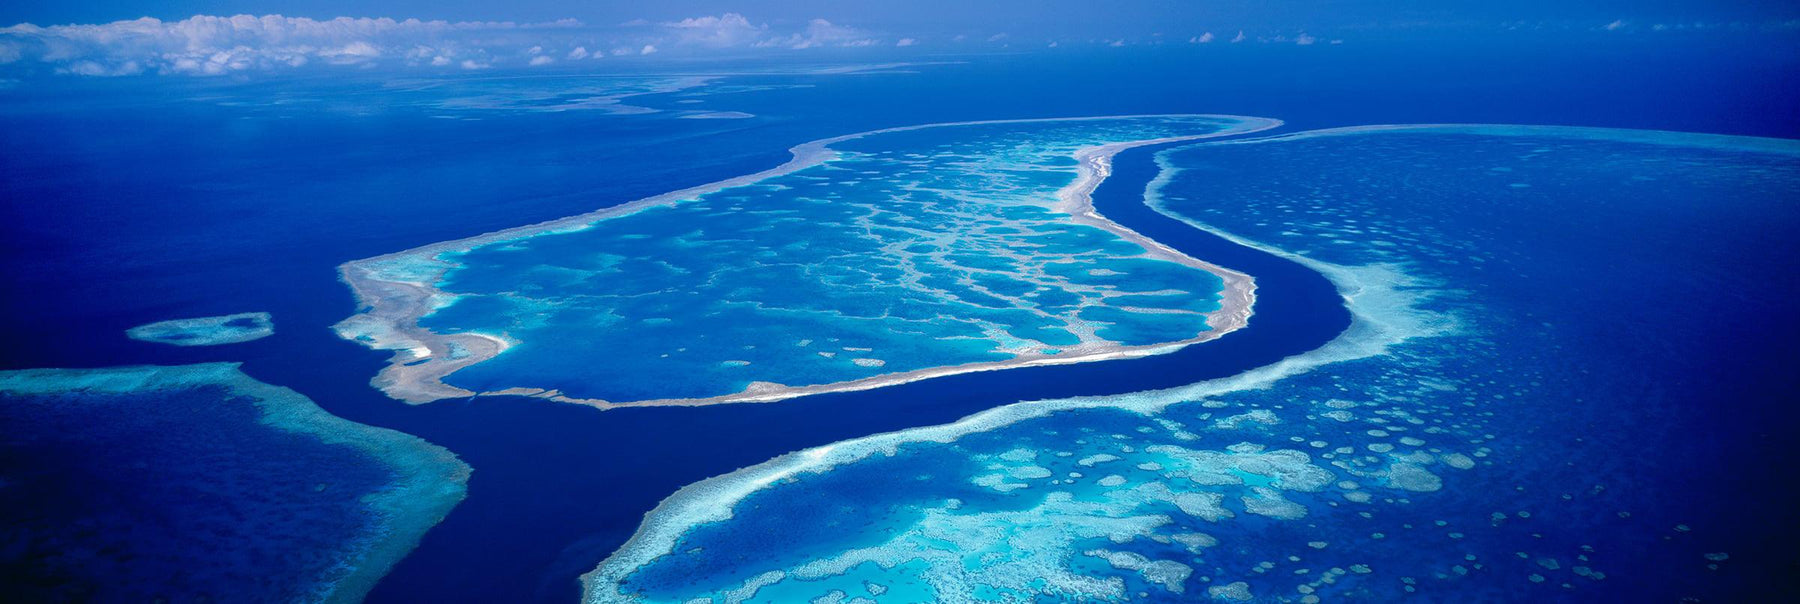 Aerial view of Hardy's Lagoon surrounded by the Great Barrier Reef Australia